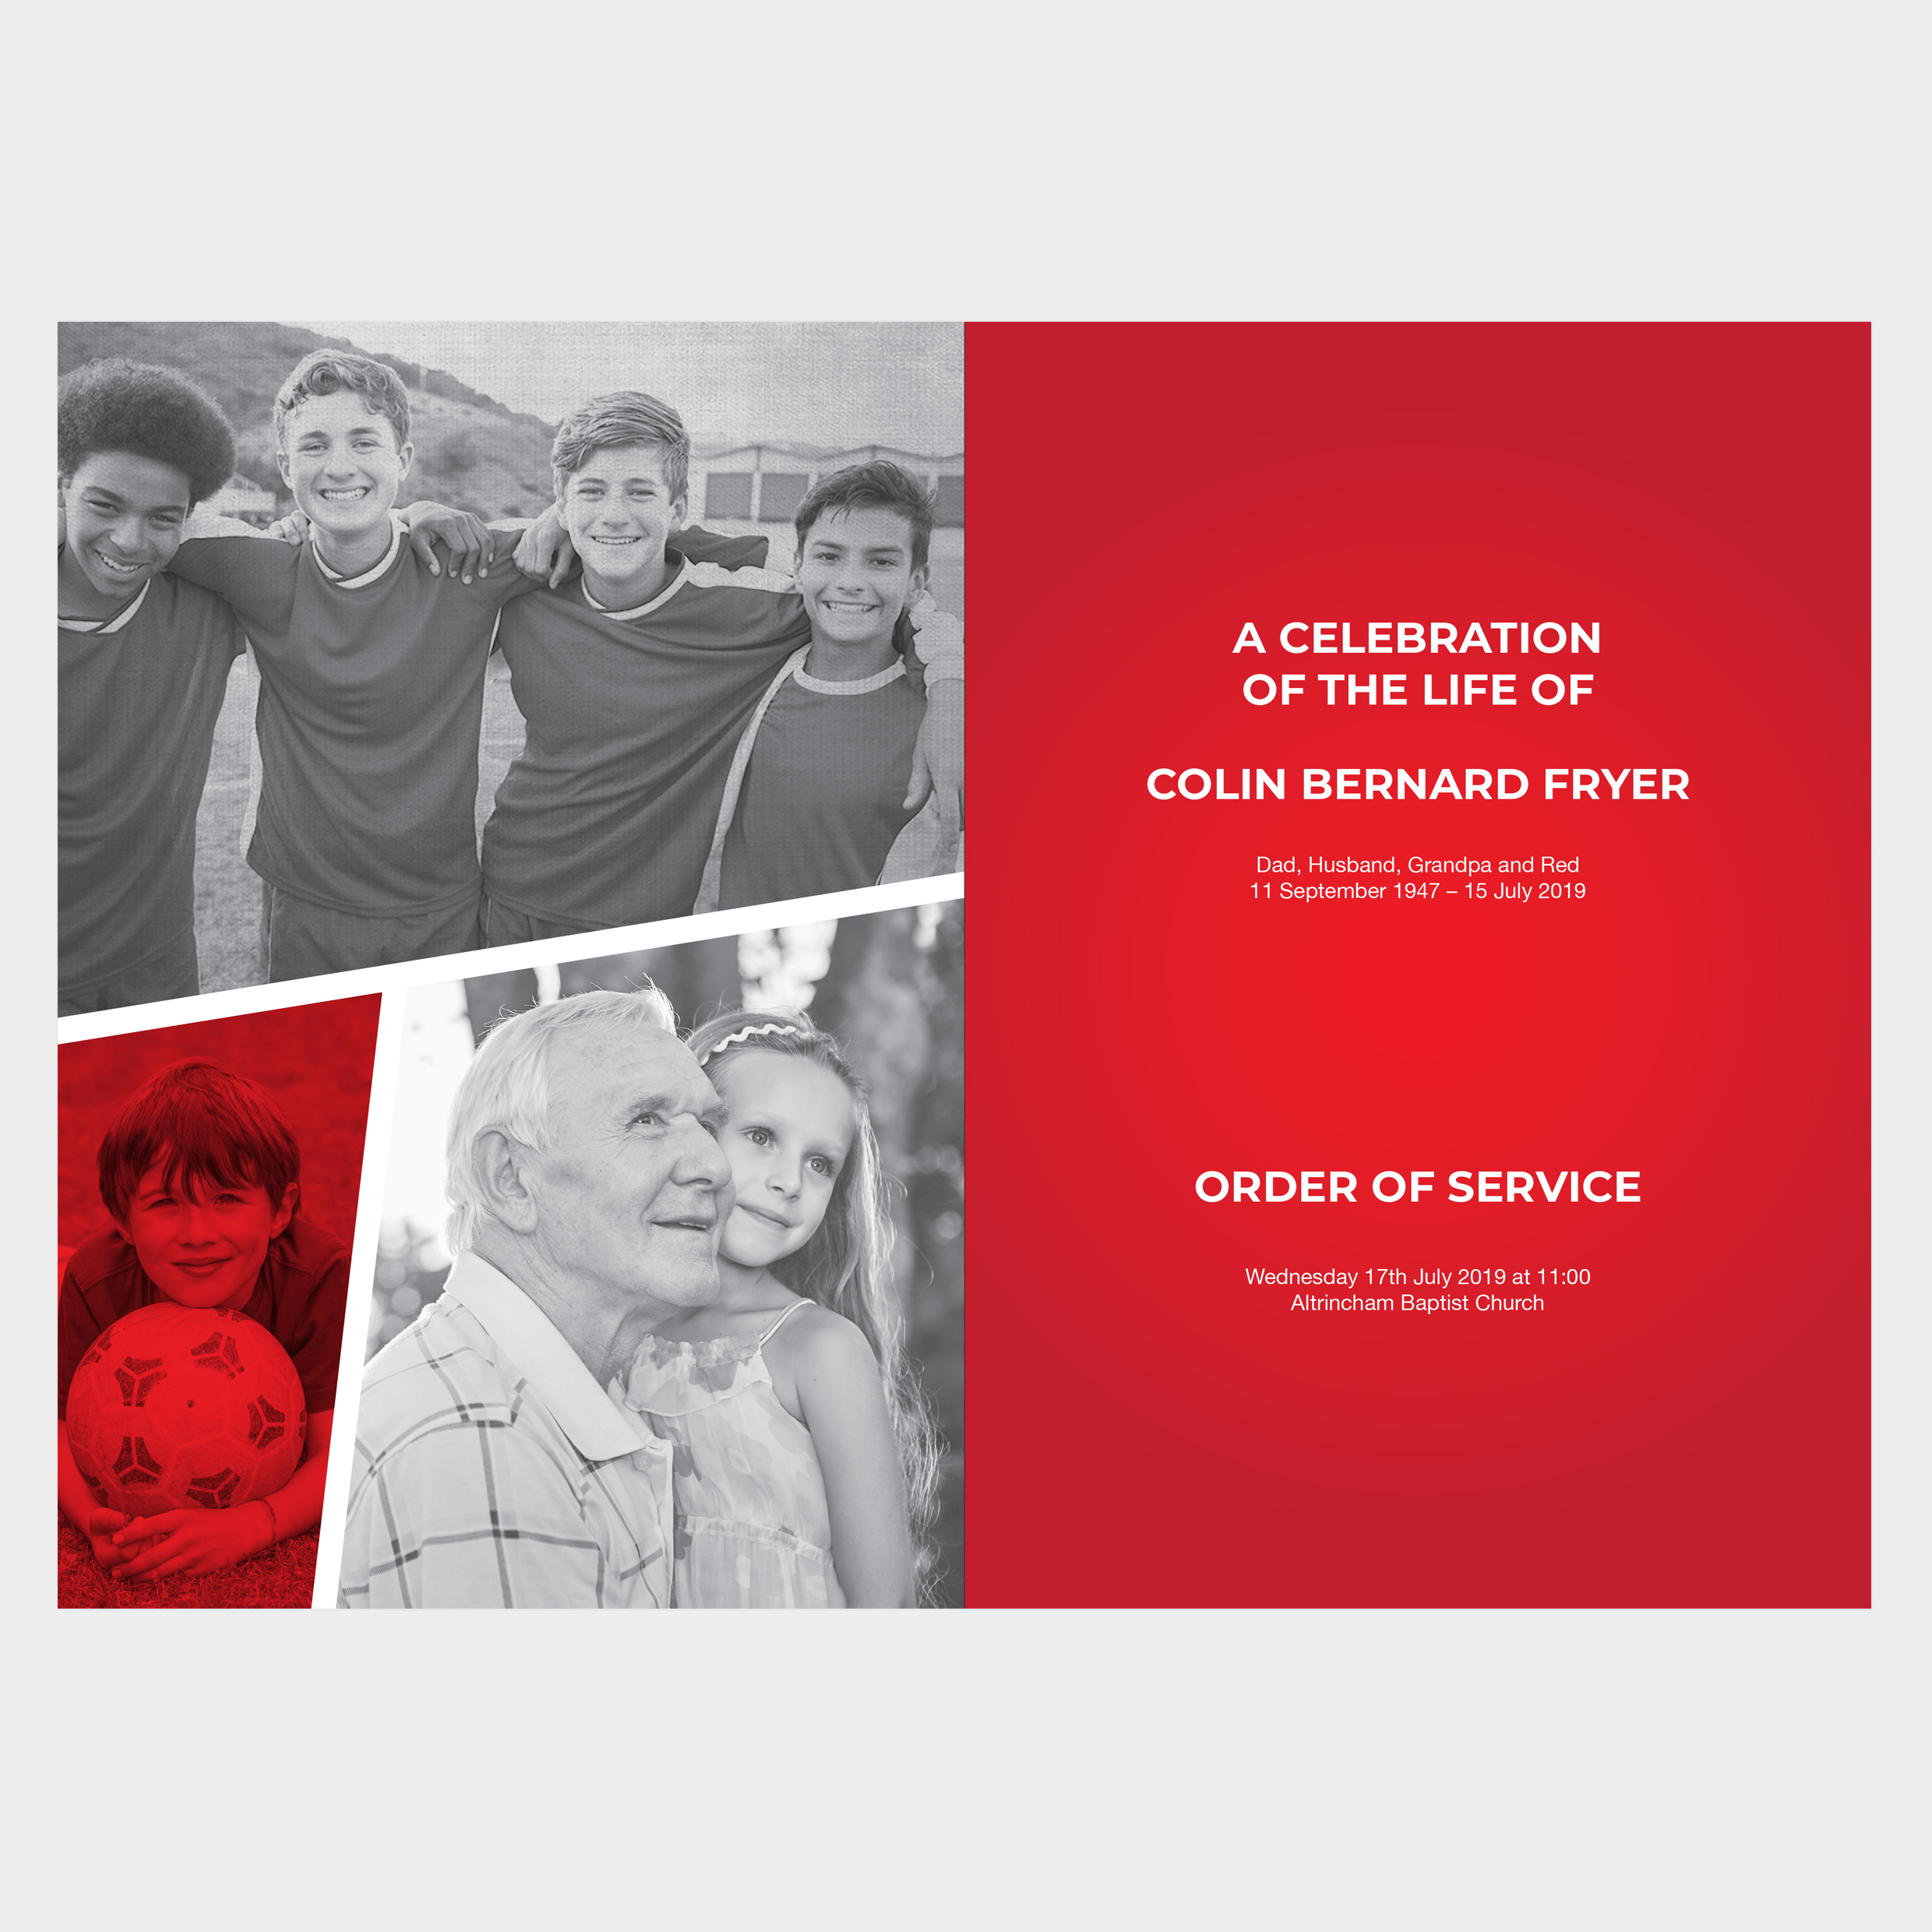 Football Funeral Order of Service, Manchester United funeral order of service, Liverpool funeral order of service, Sunderland funeral order of service